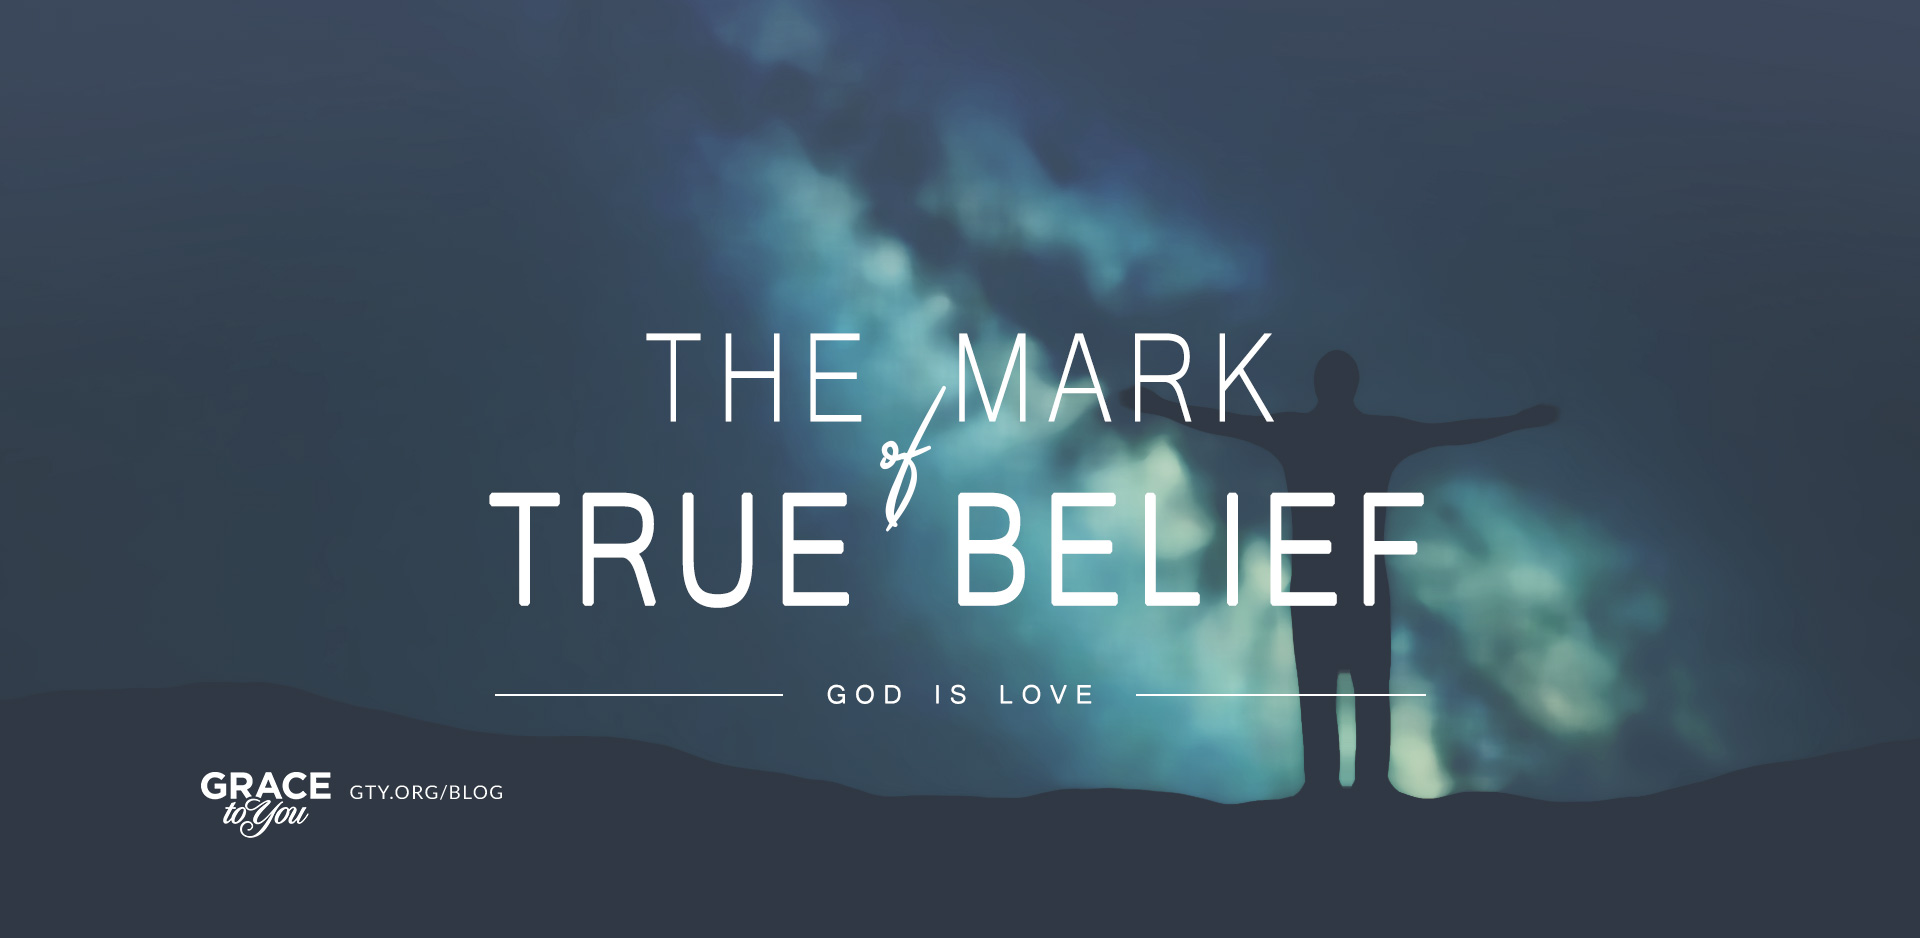 The Mark of True Belief